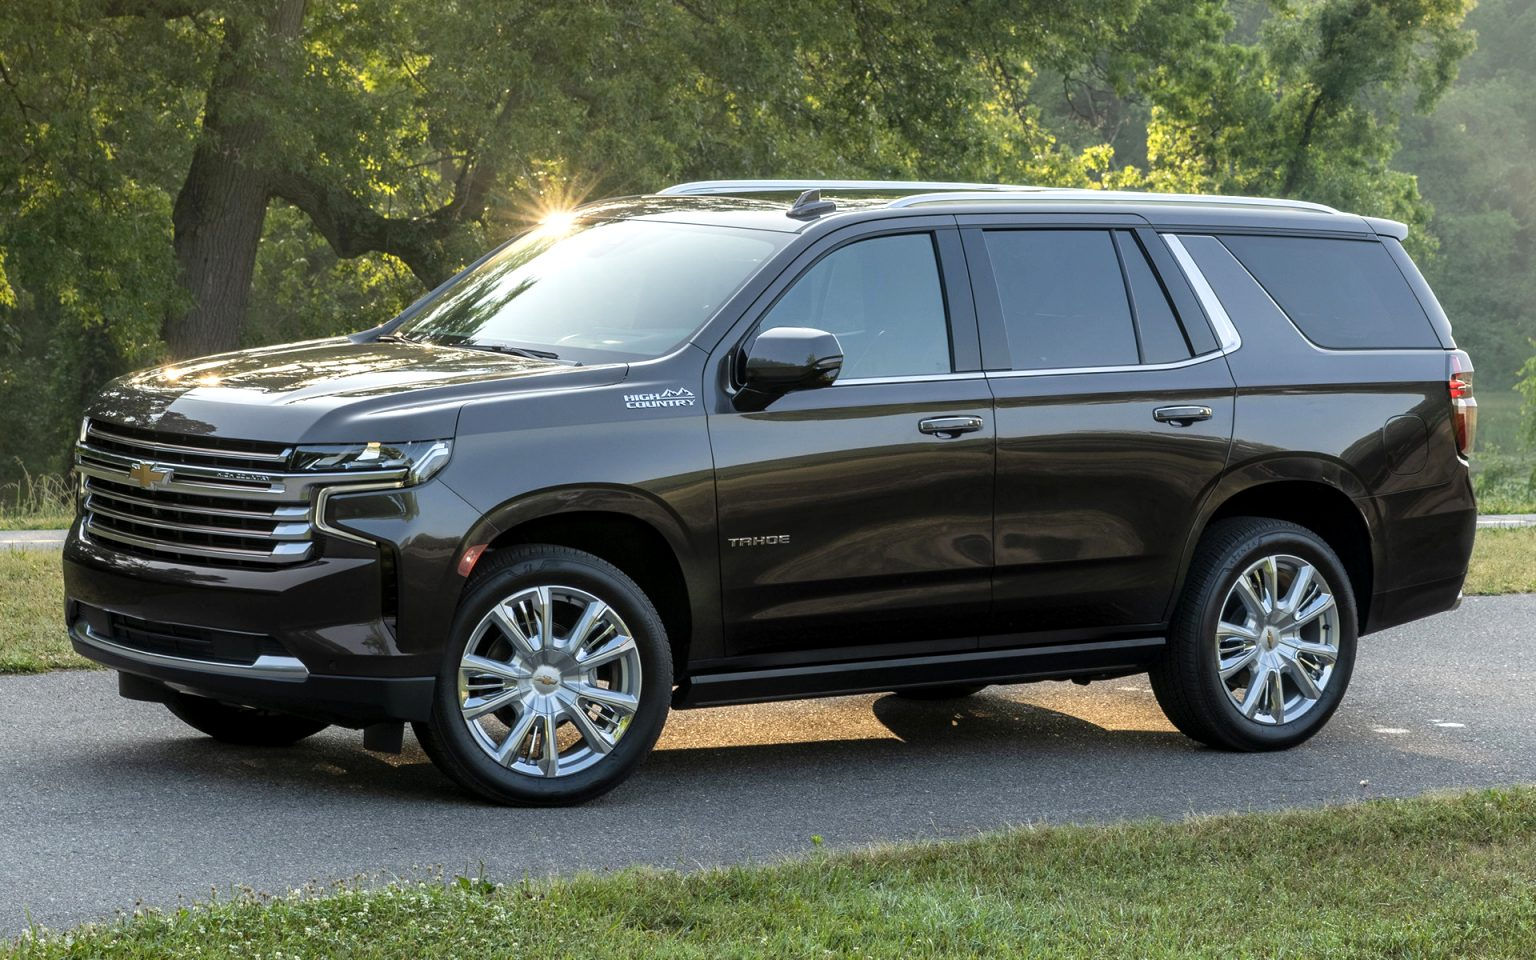 2021 chevrolet tahoe New Review